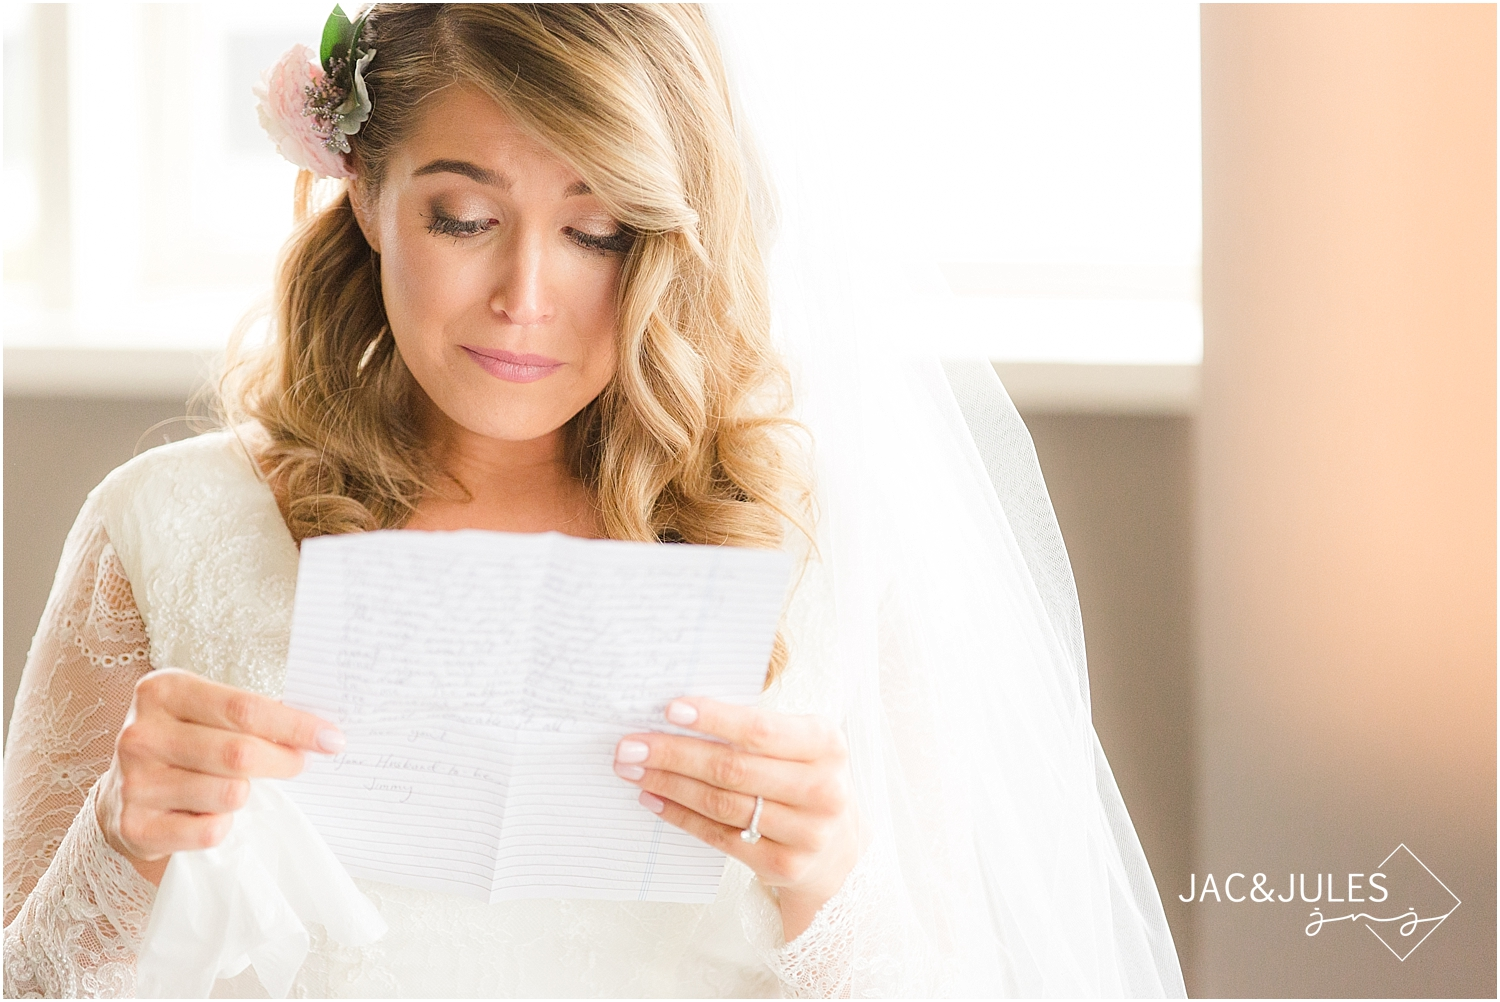 jacnjules photographs bride reading letter from groom at Oyster Point